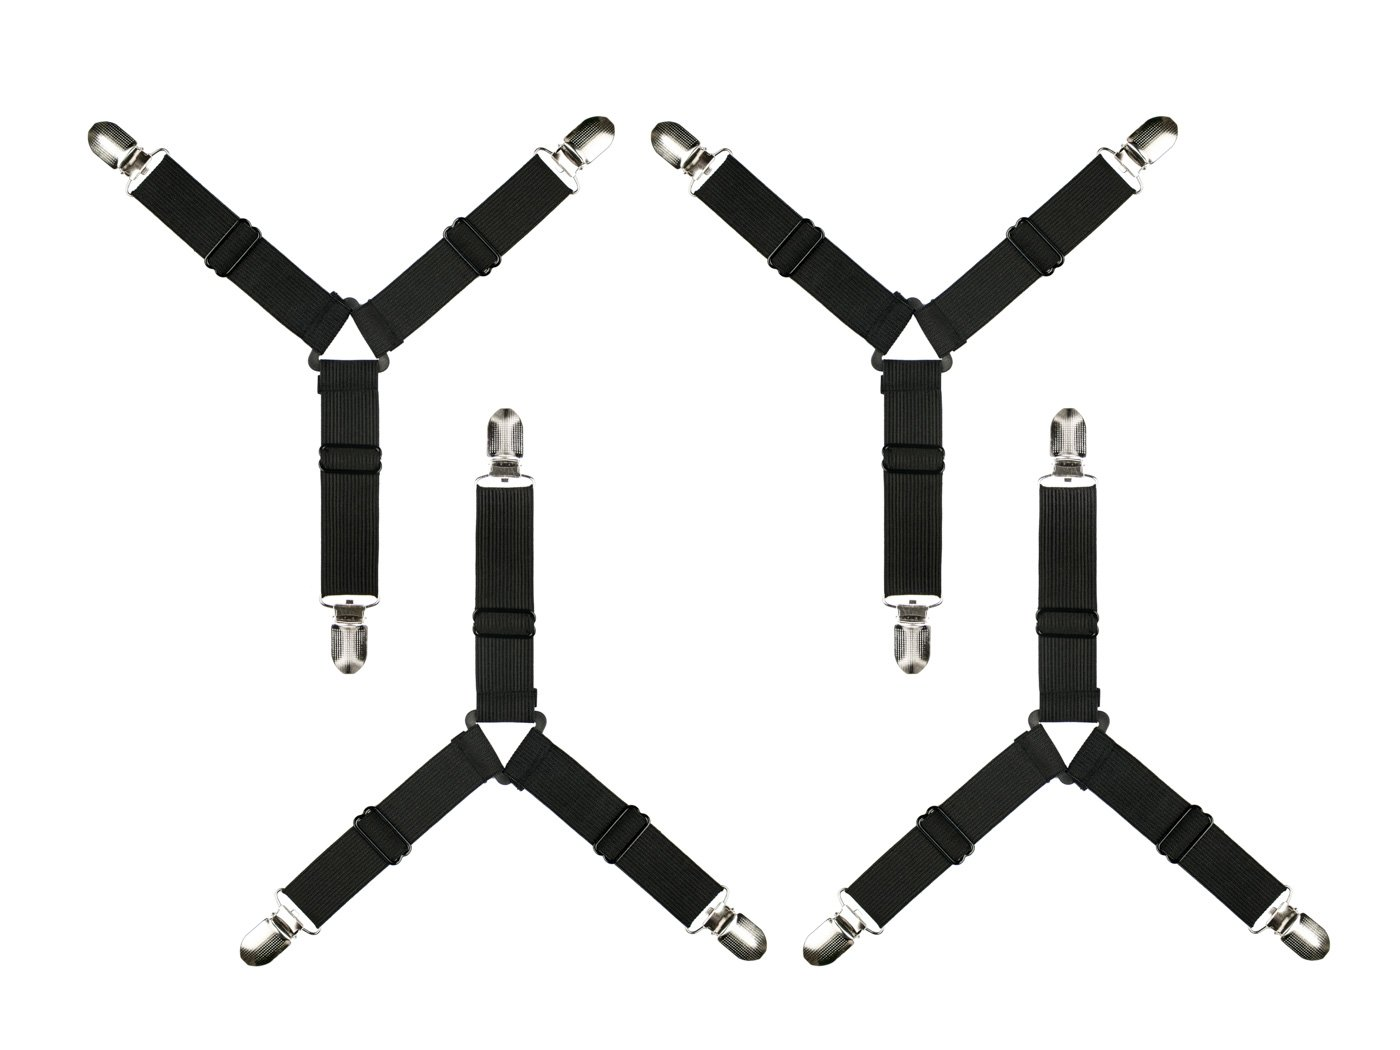 AYE 3-Way Sheet Holder Straps, Adjustable Triangle Fastener Suspenders Grippers for Bed Sheets,Mattress Covers and Sofa Cushion (Black, Pack of 4) AYE Store